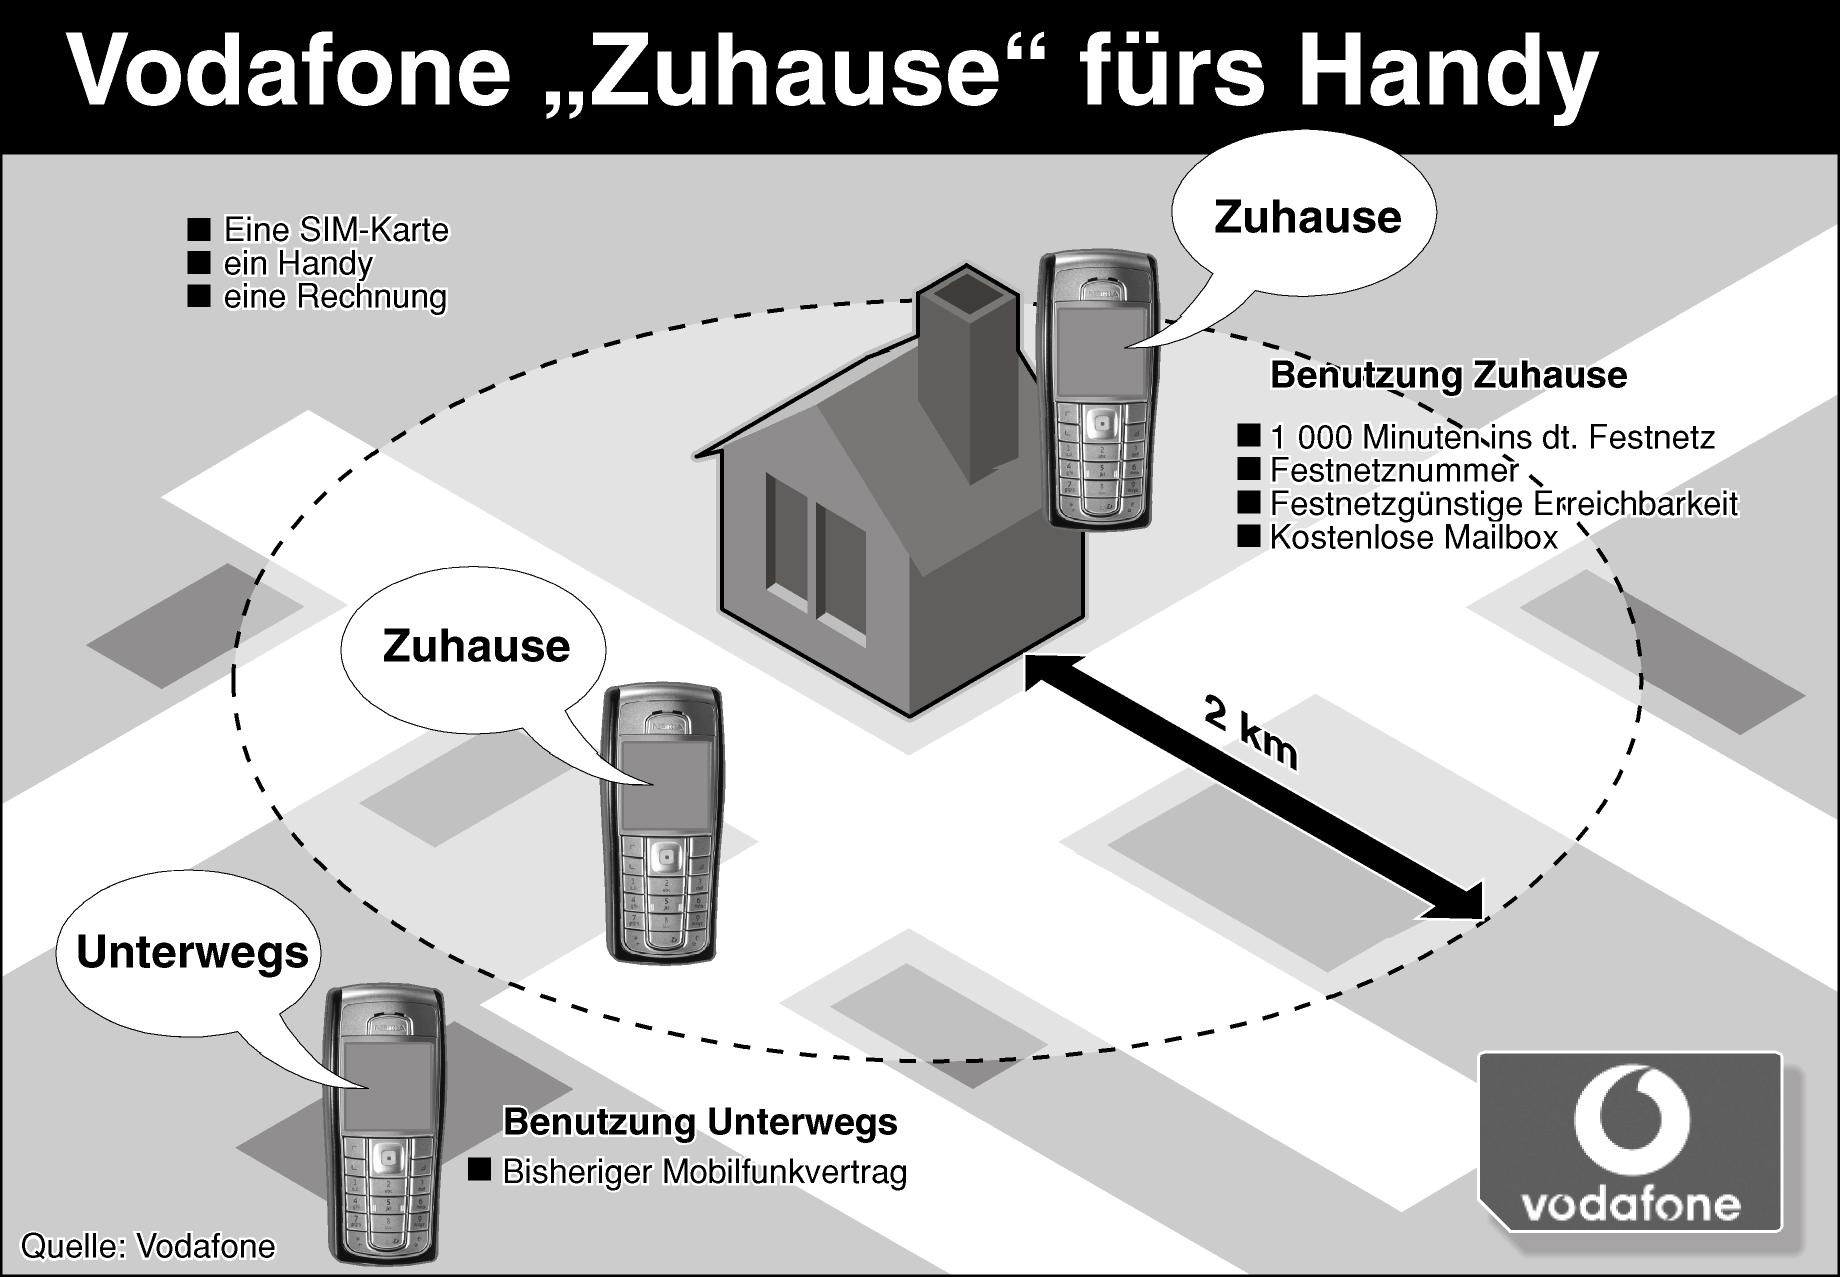 vodafone zuhause f rs handy ein handy f r zuhause und unterwegs pressemitteilung vodafone gmbh. Black Bedroom Furniture Sets. Home Design Ideas